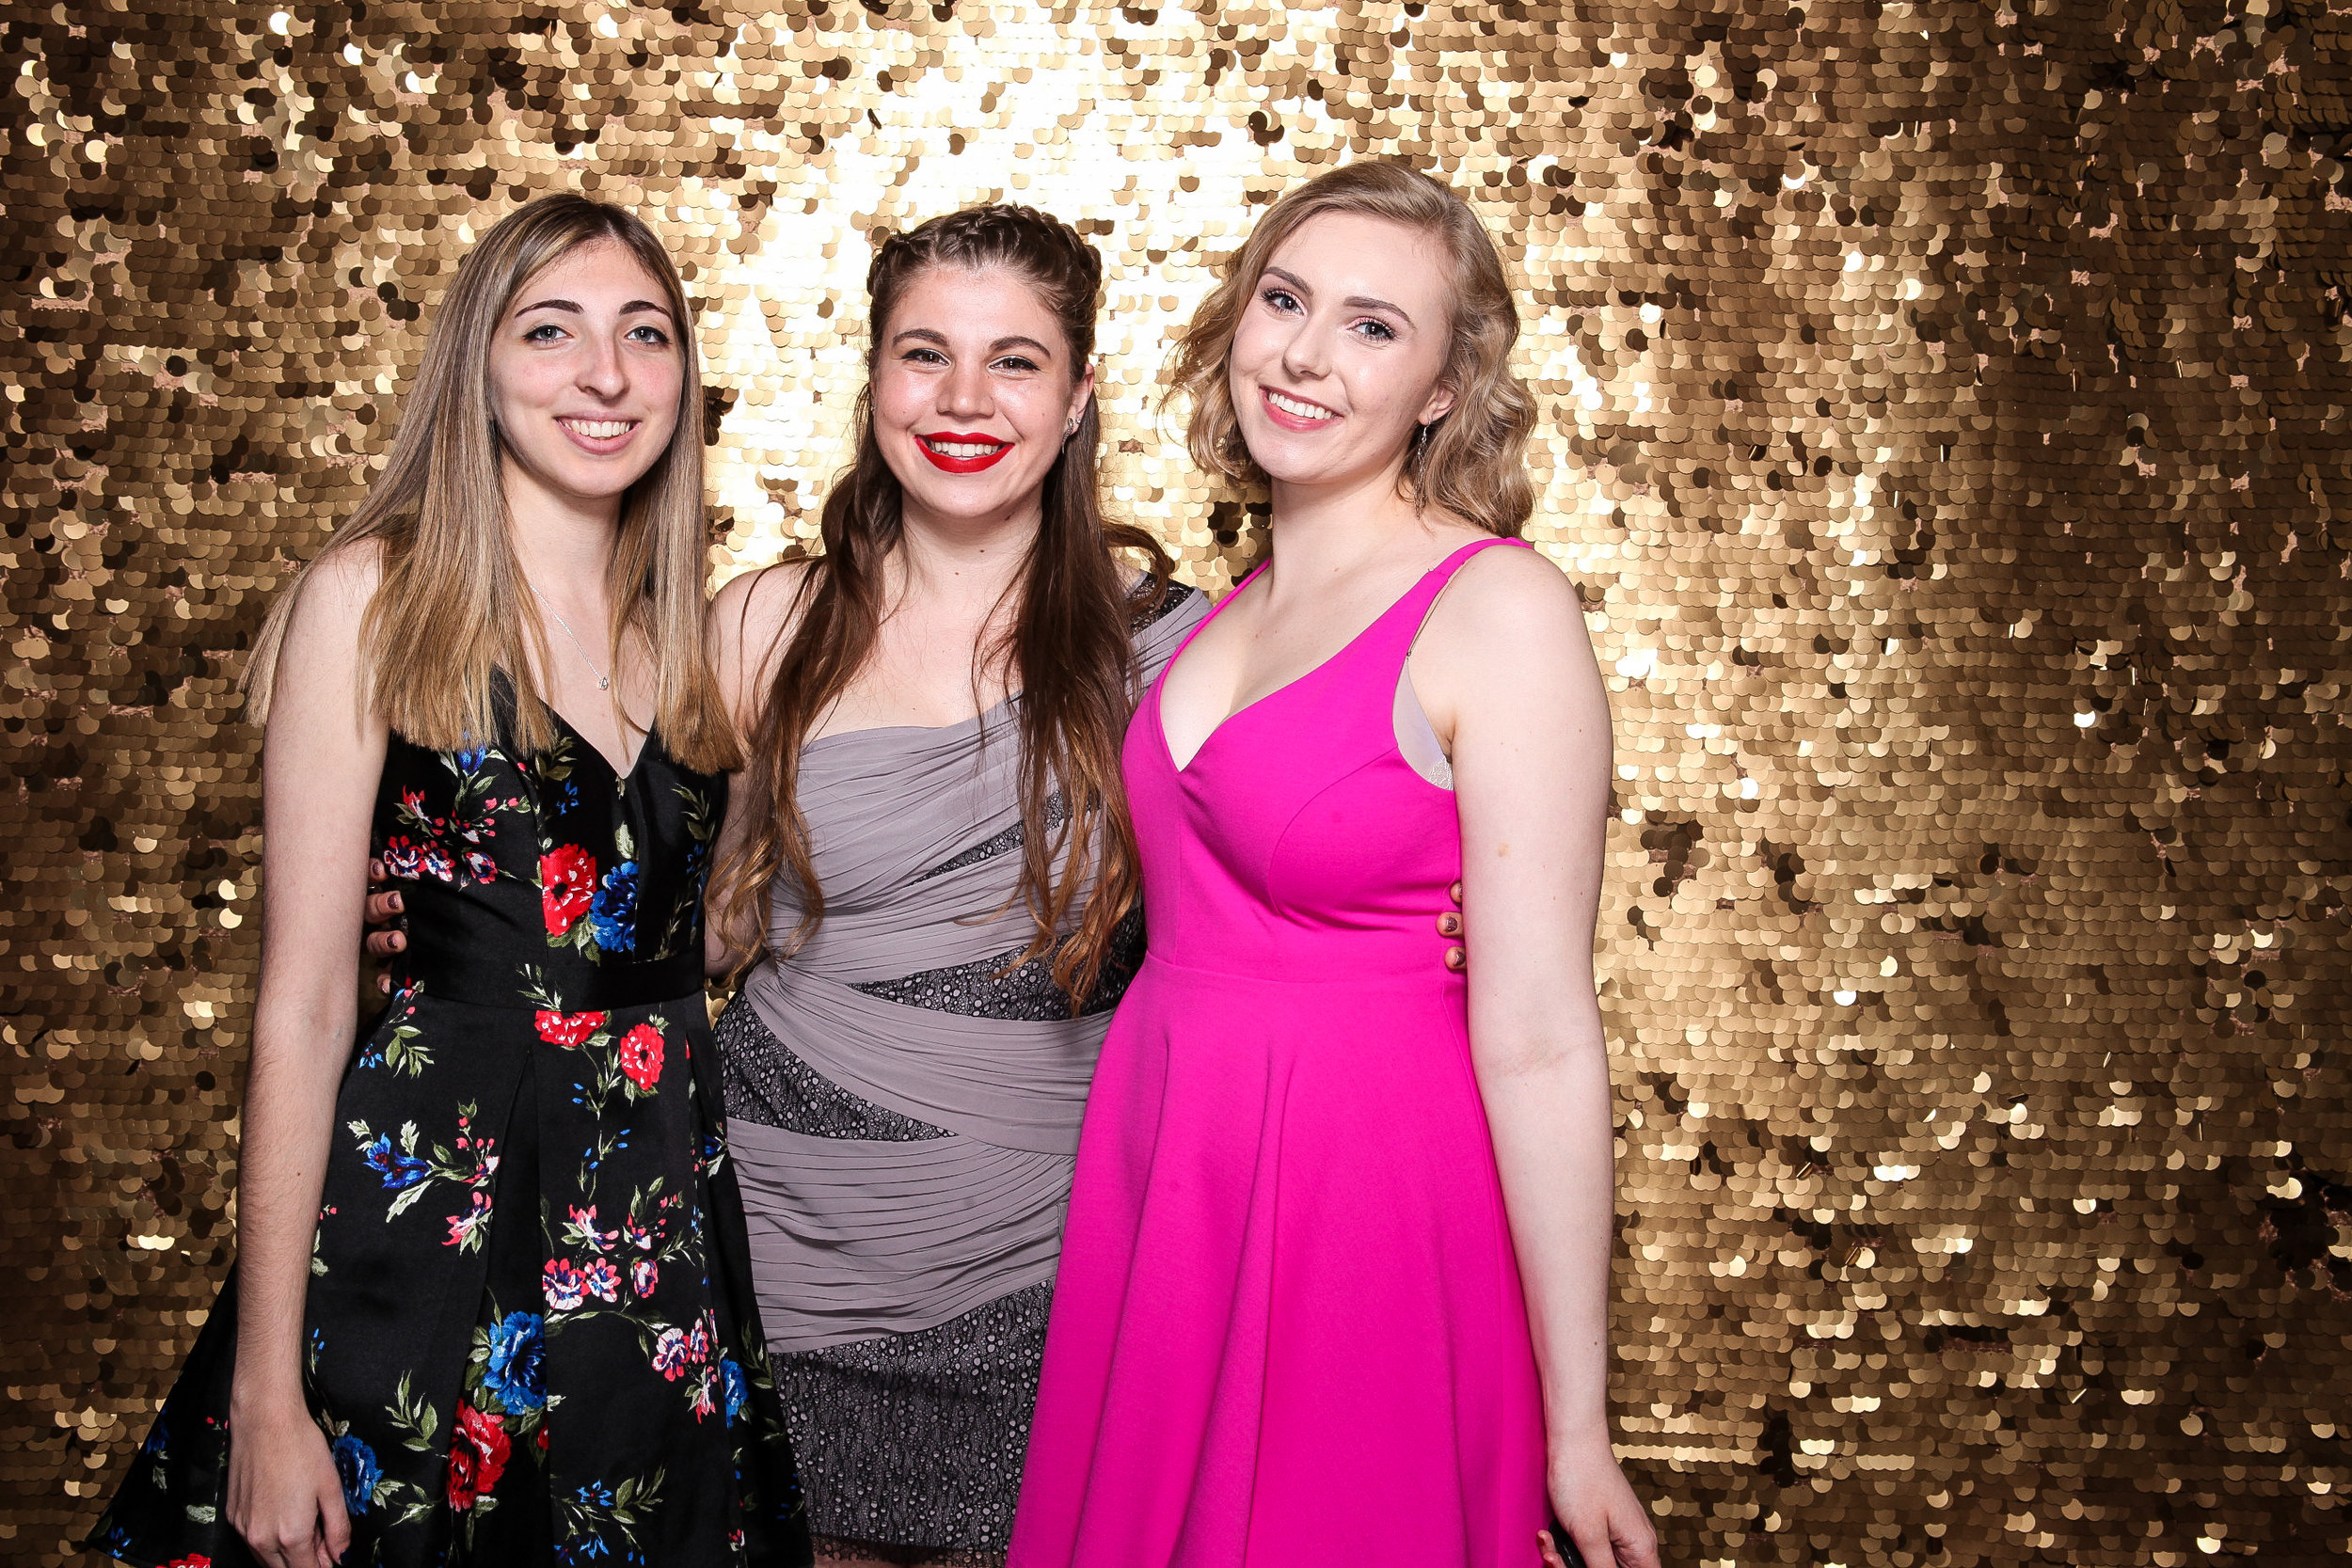 20190503_Adelphi_Senior_Formal-181.jpg